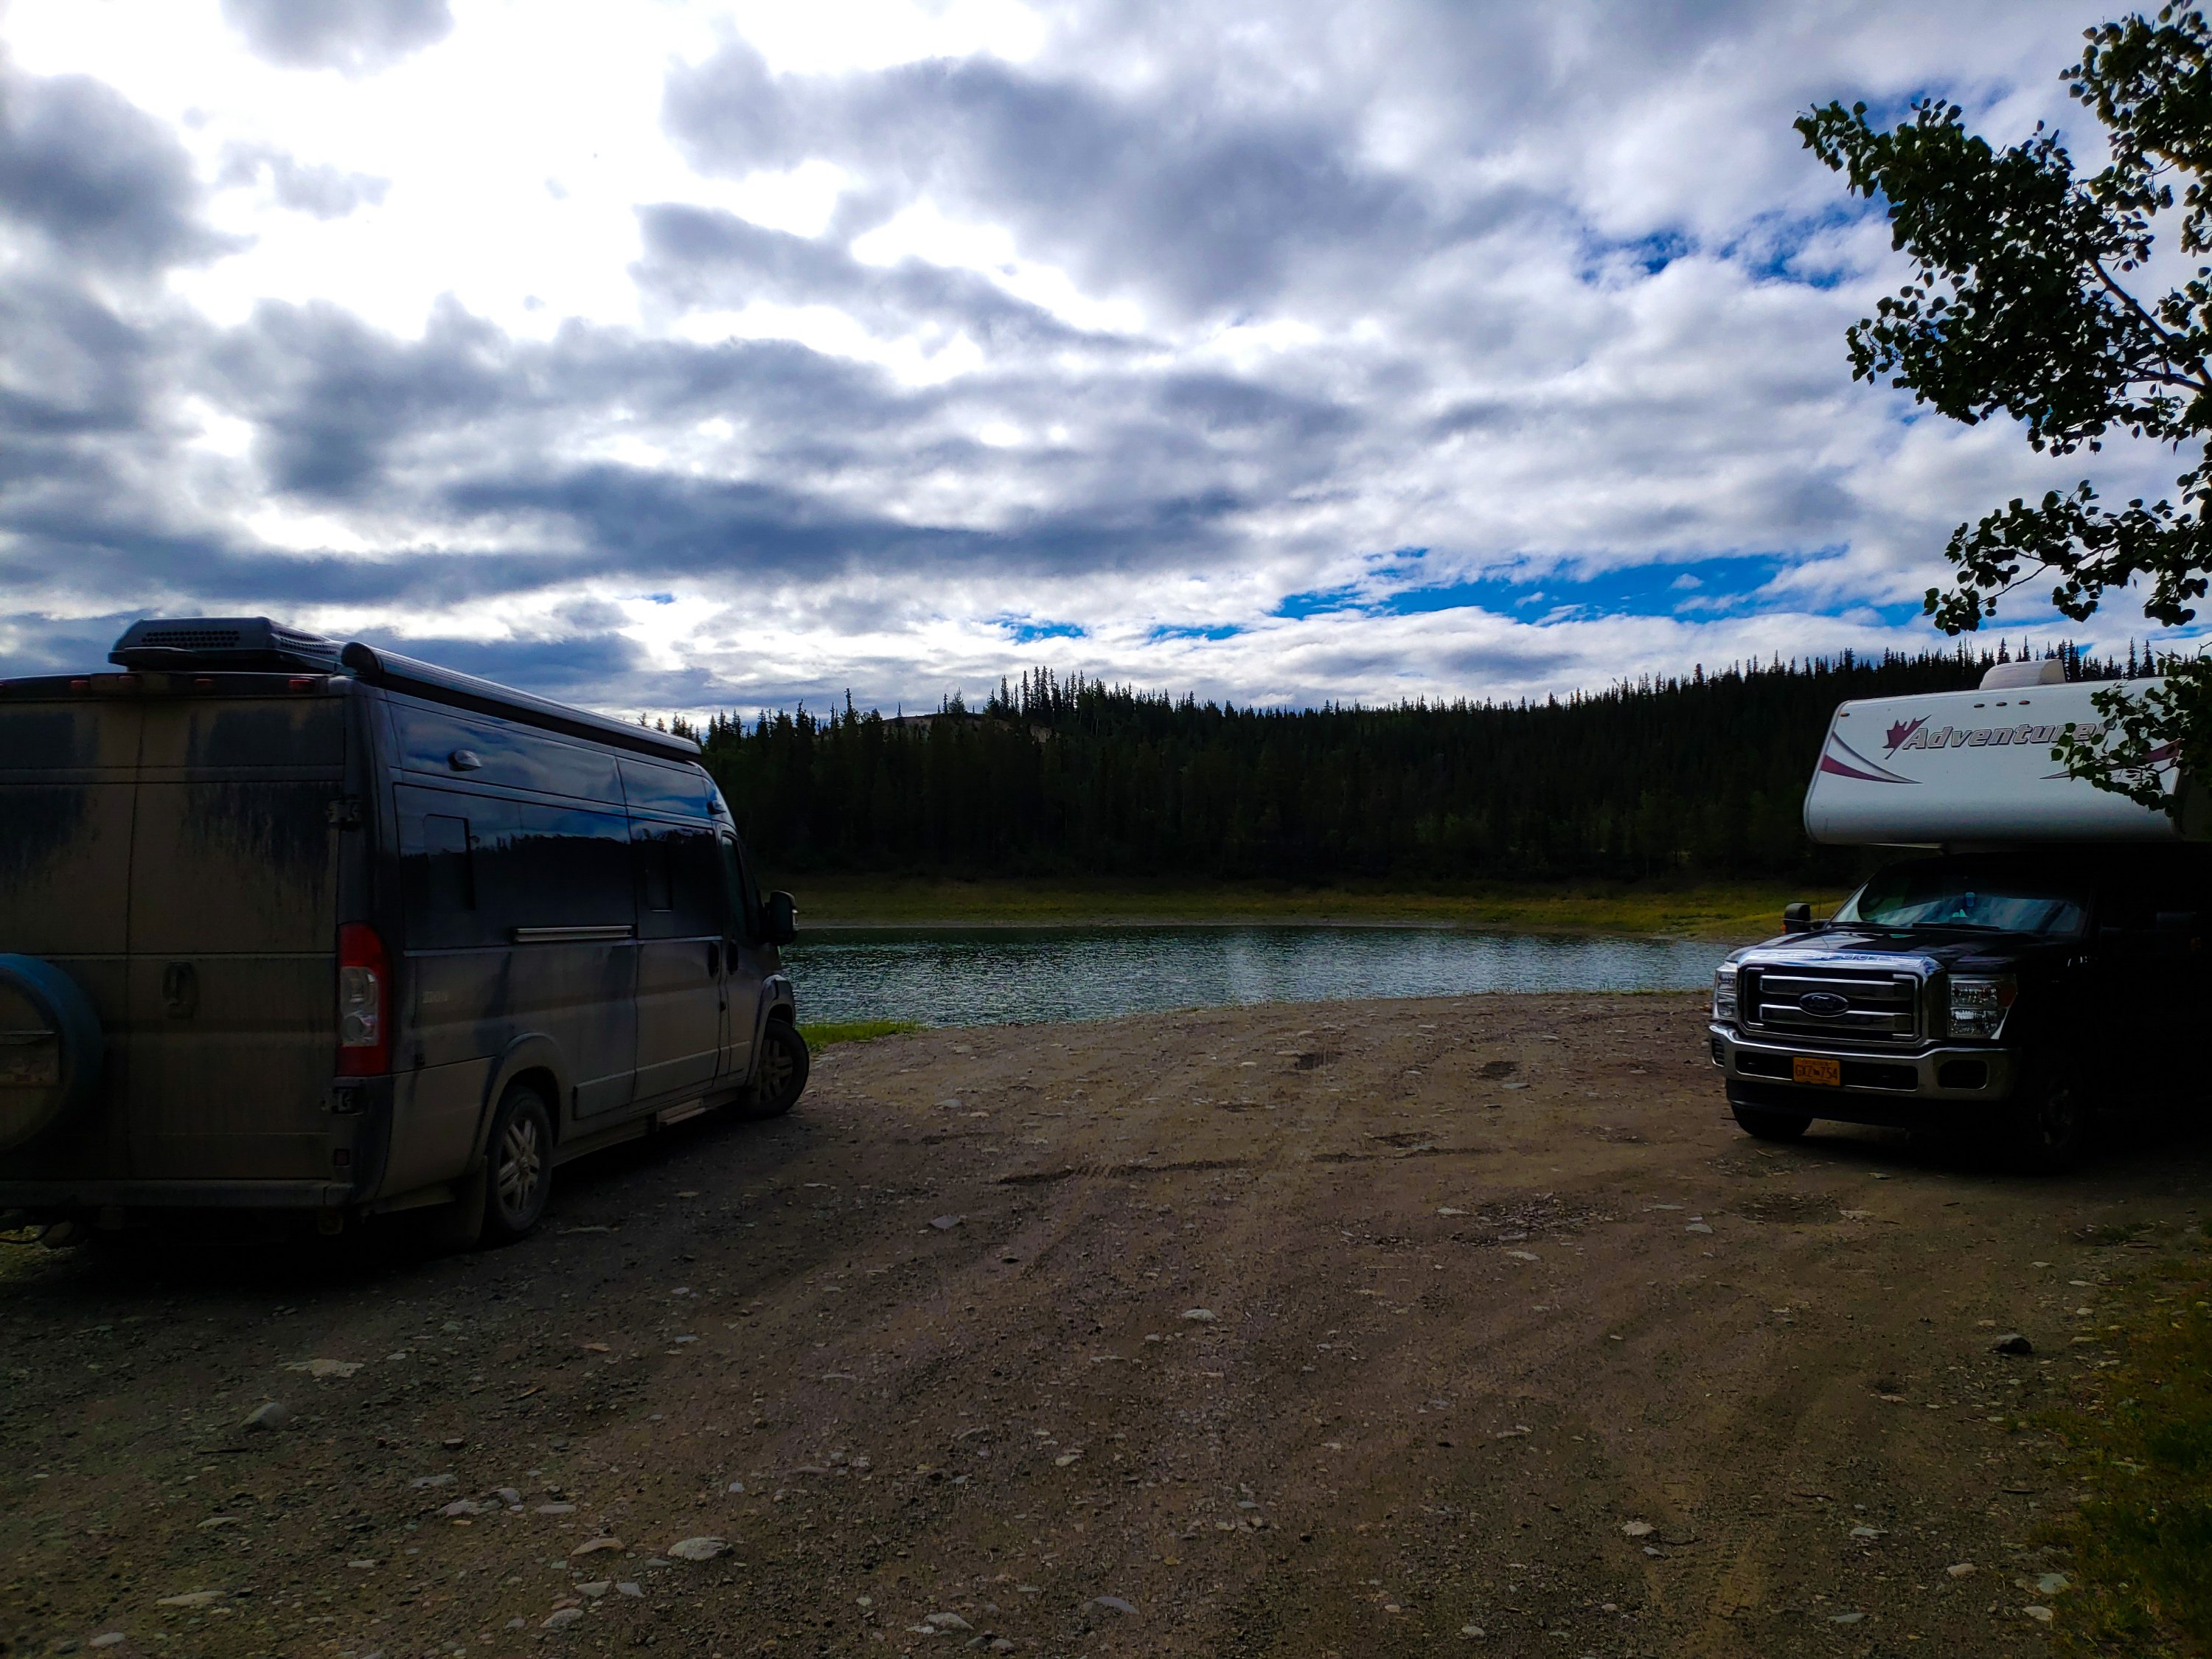 Boondocking, travel tips, vanlife, budget travel, frugal travel, living in a van, free camping